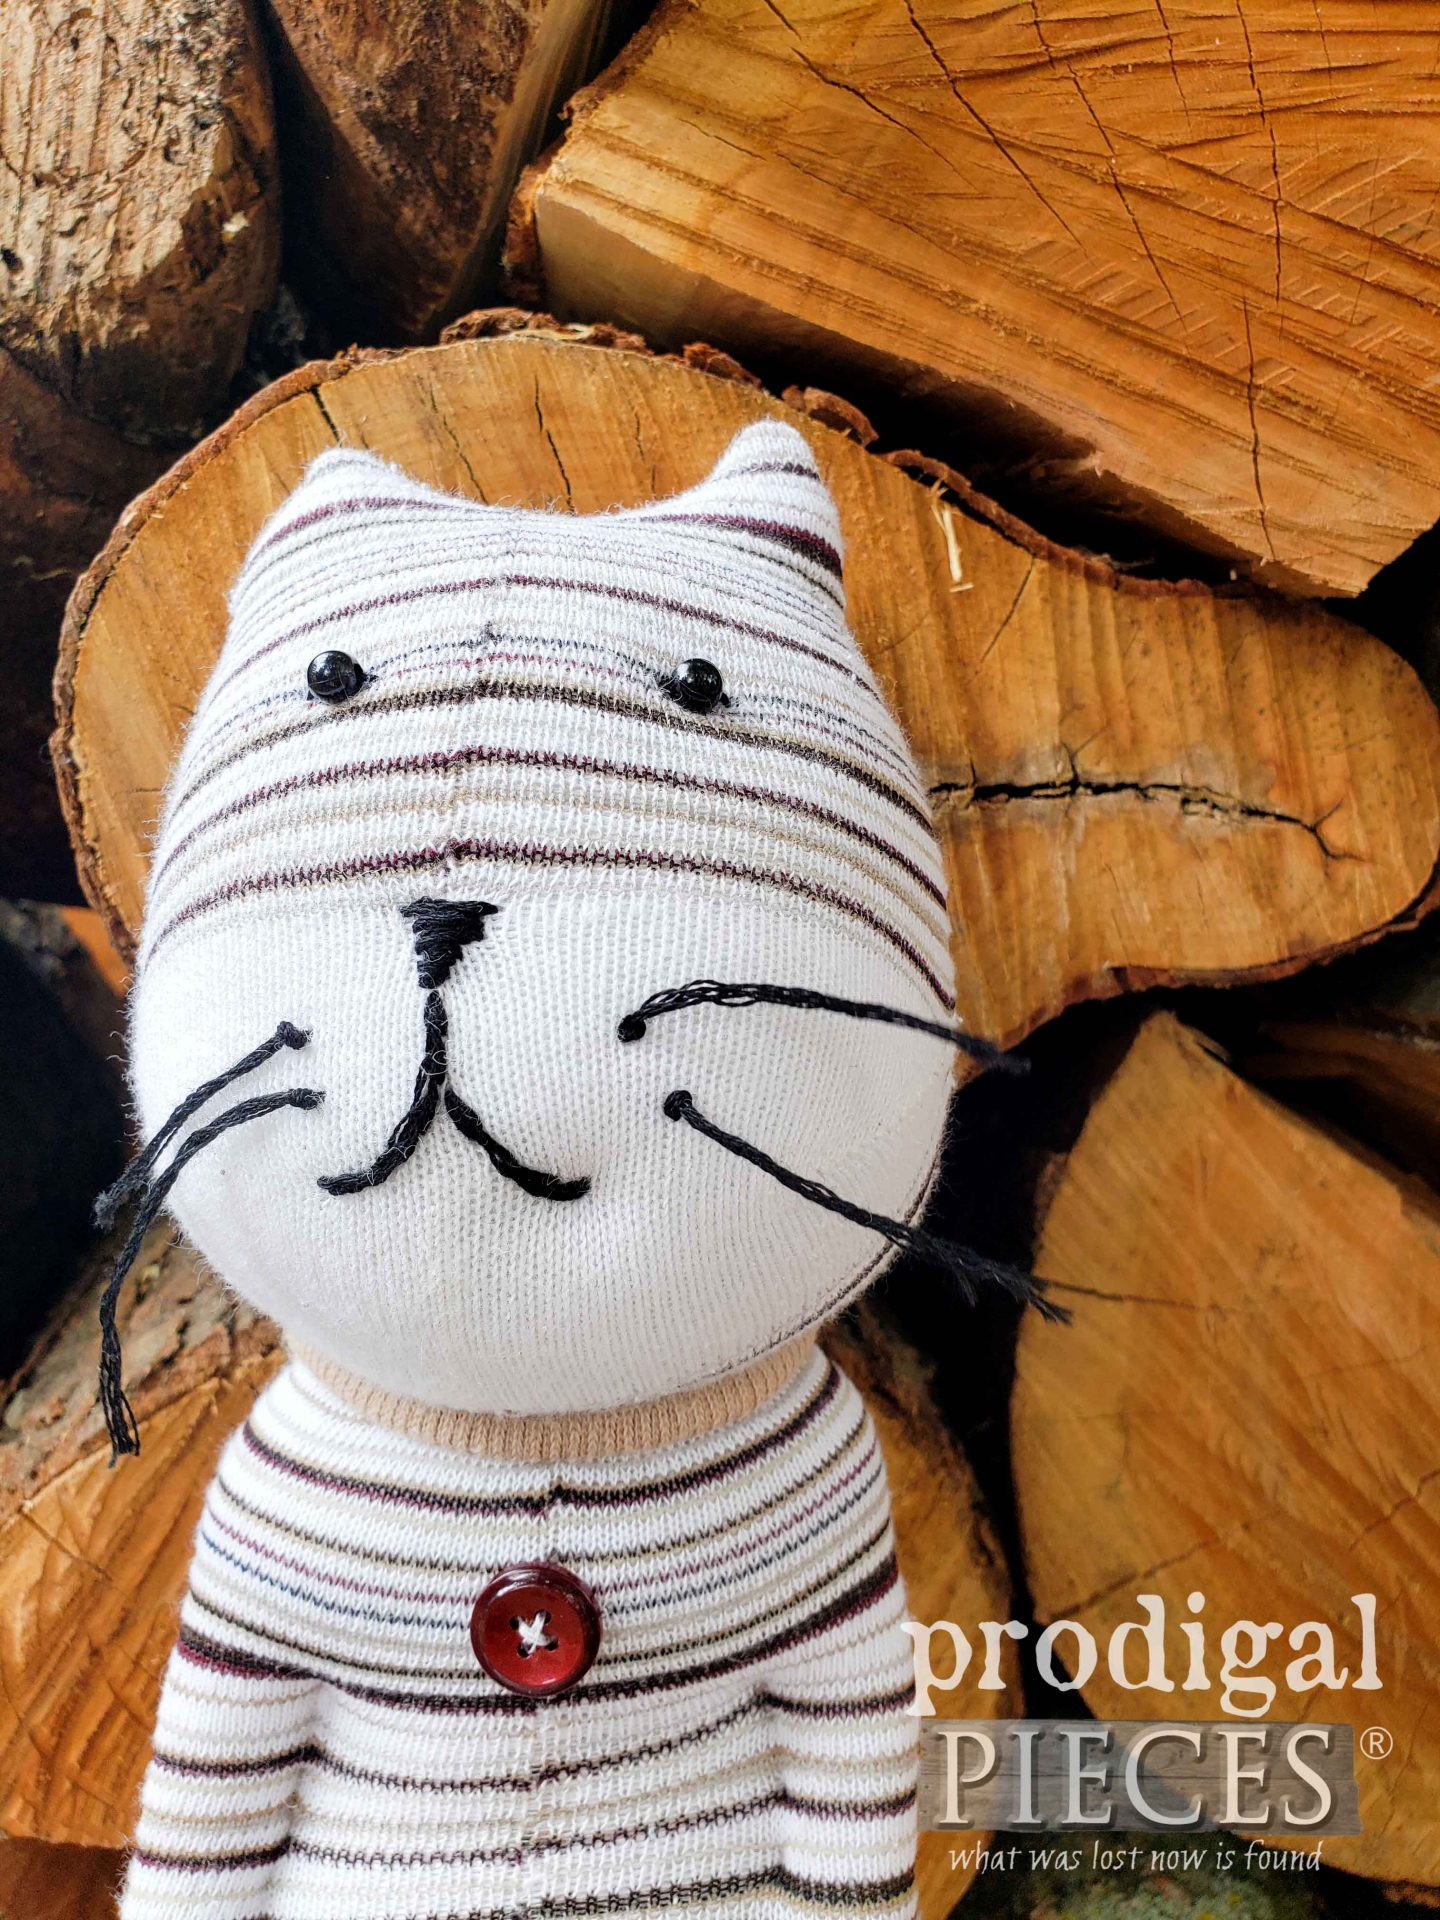 Handmade Embroidered Upcycled Sock Doll Cat by Larissa of Prodigal Pieces | prodigalpieces.com #prodigalpieces #handmade #toys #upcycled #cat #kids #sewing